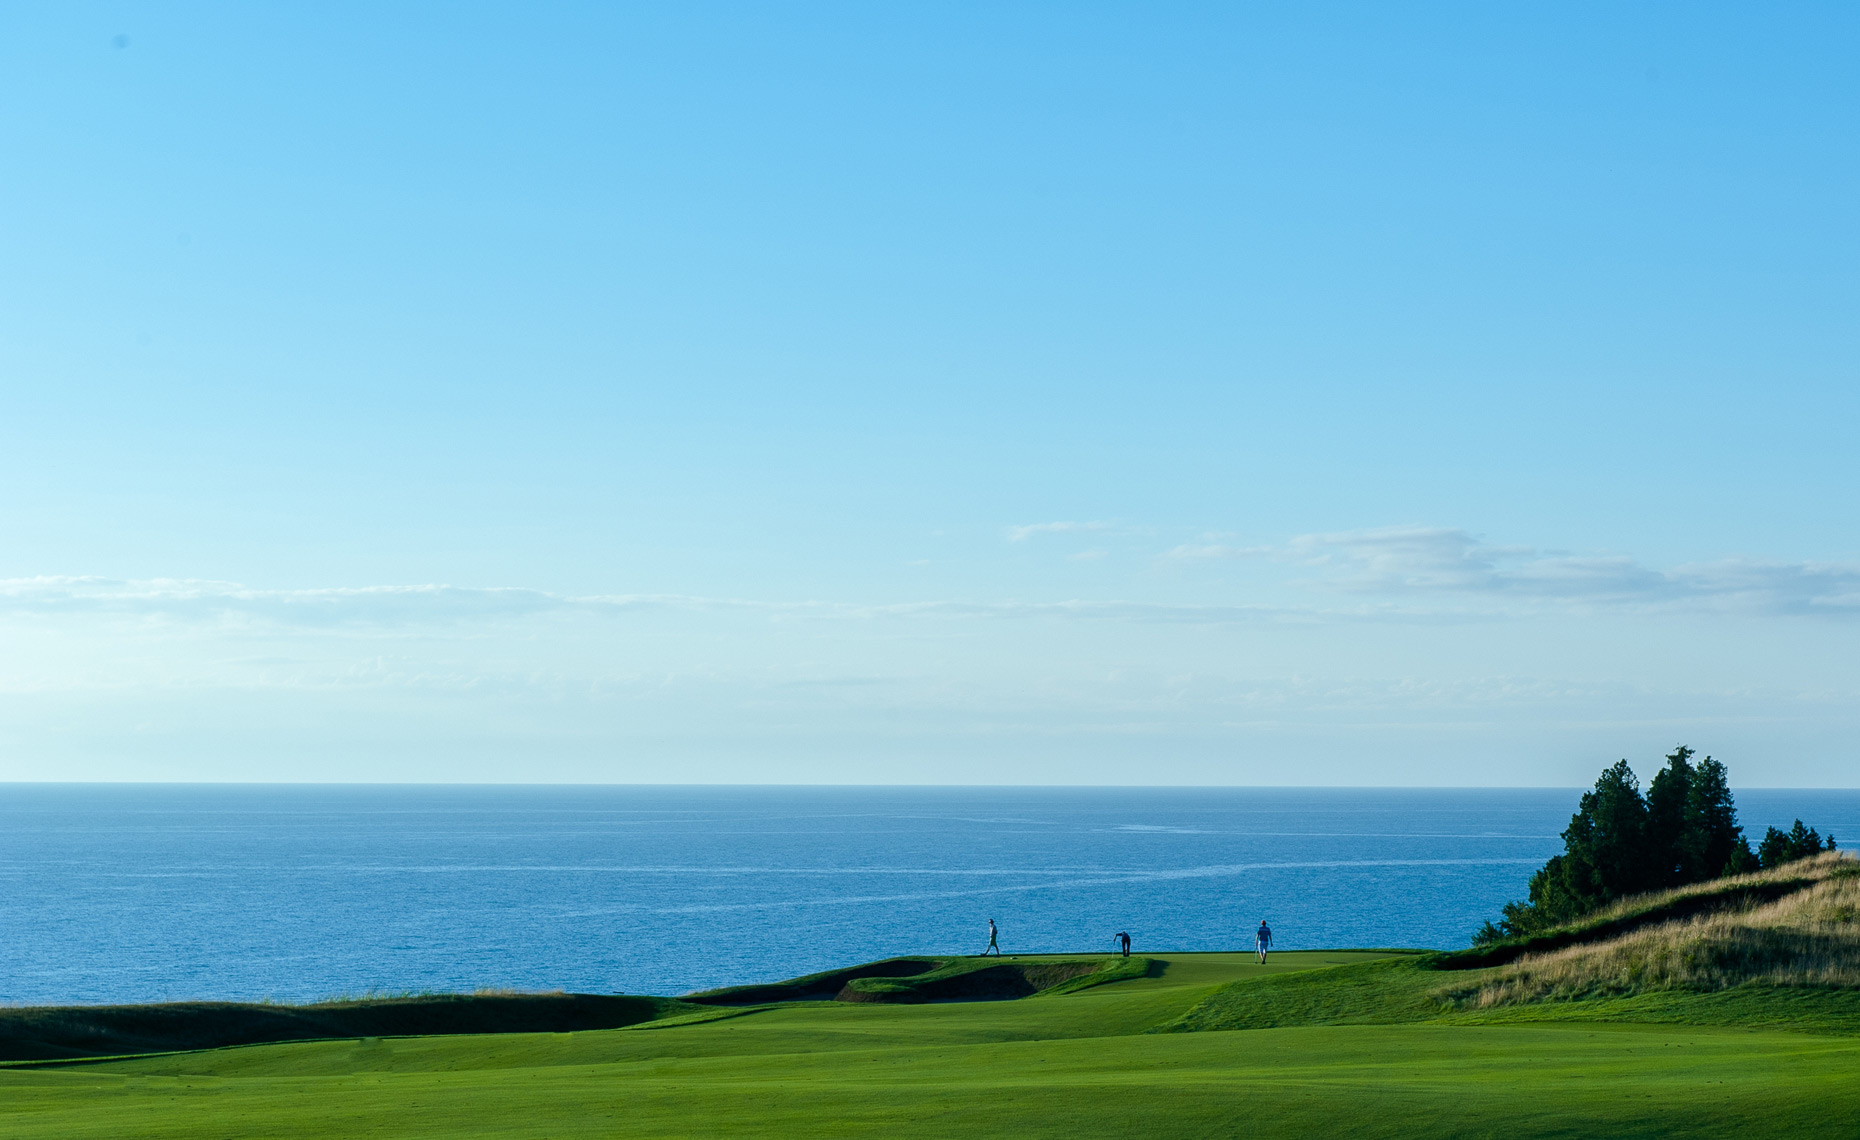 Neil-Colton-travel-photography-arcadia-bluffs-golf-club-144